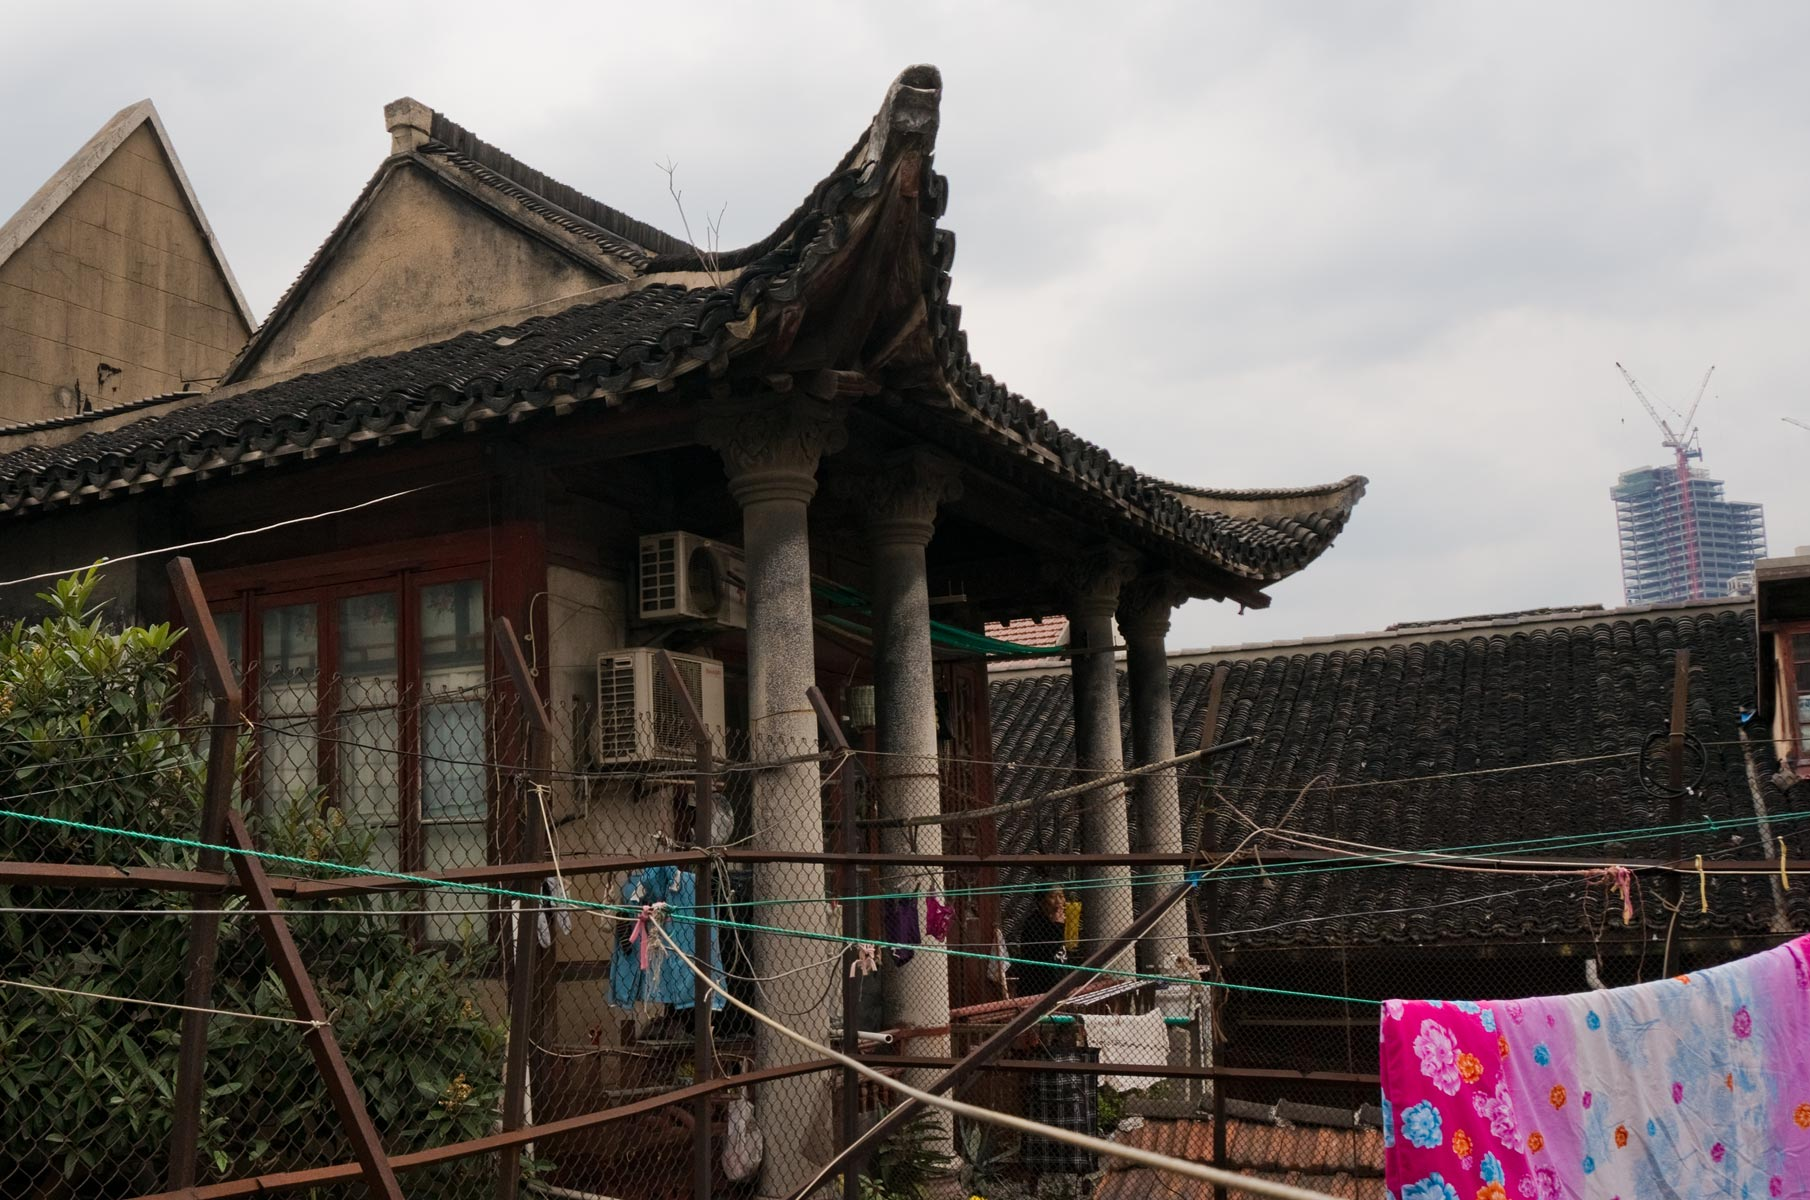 Kleiner privater Tempel in der Qiaojia Road in Shanghai, China